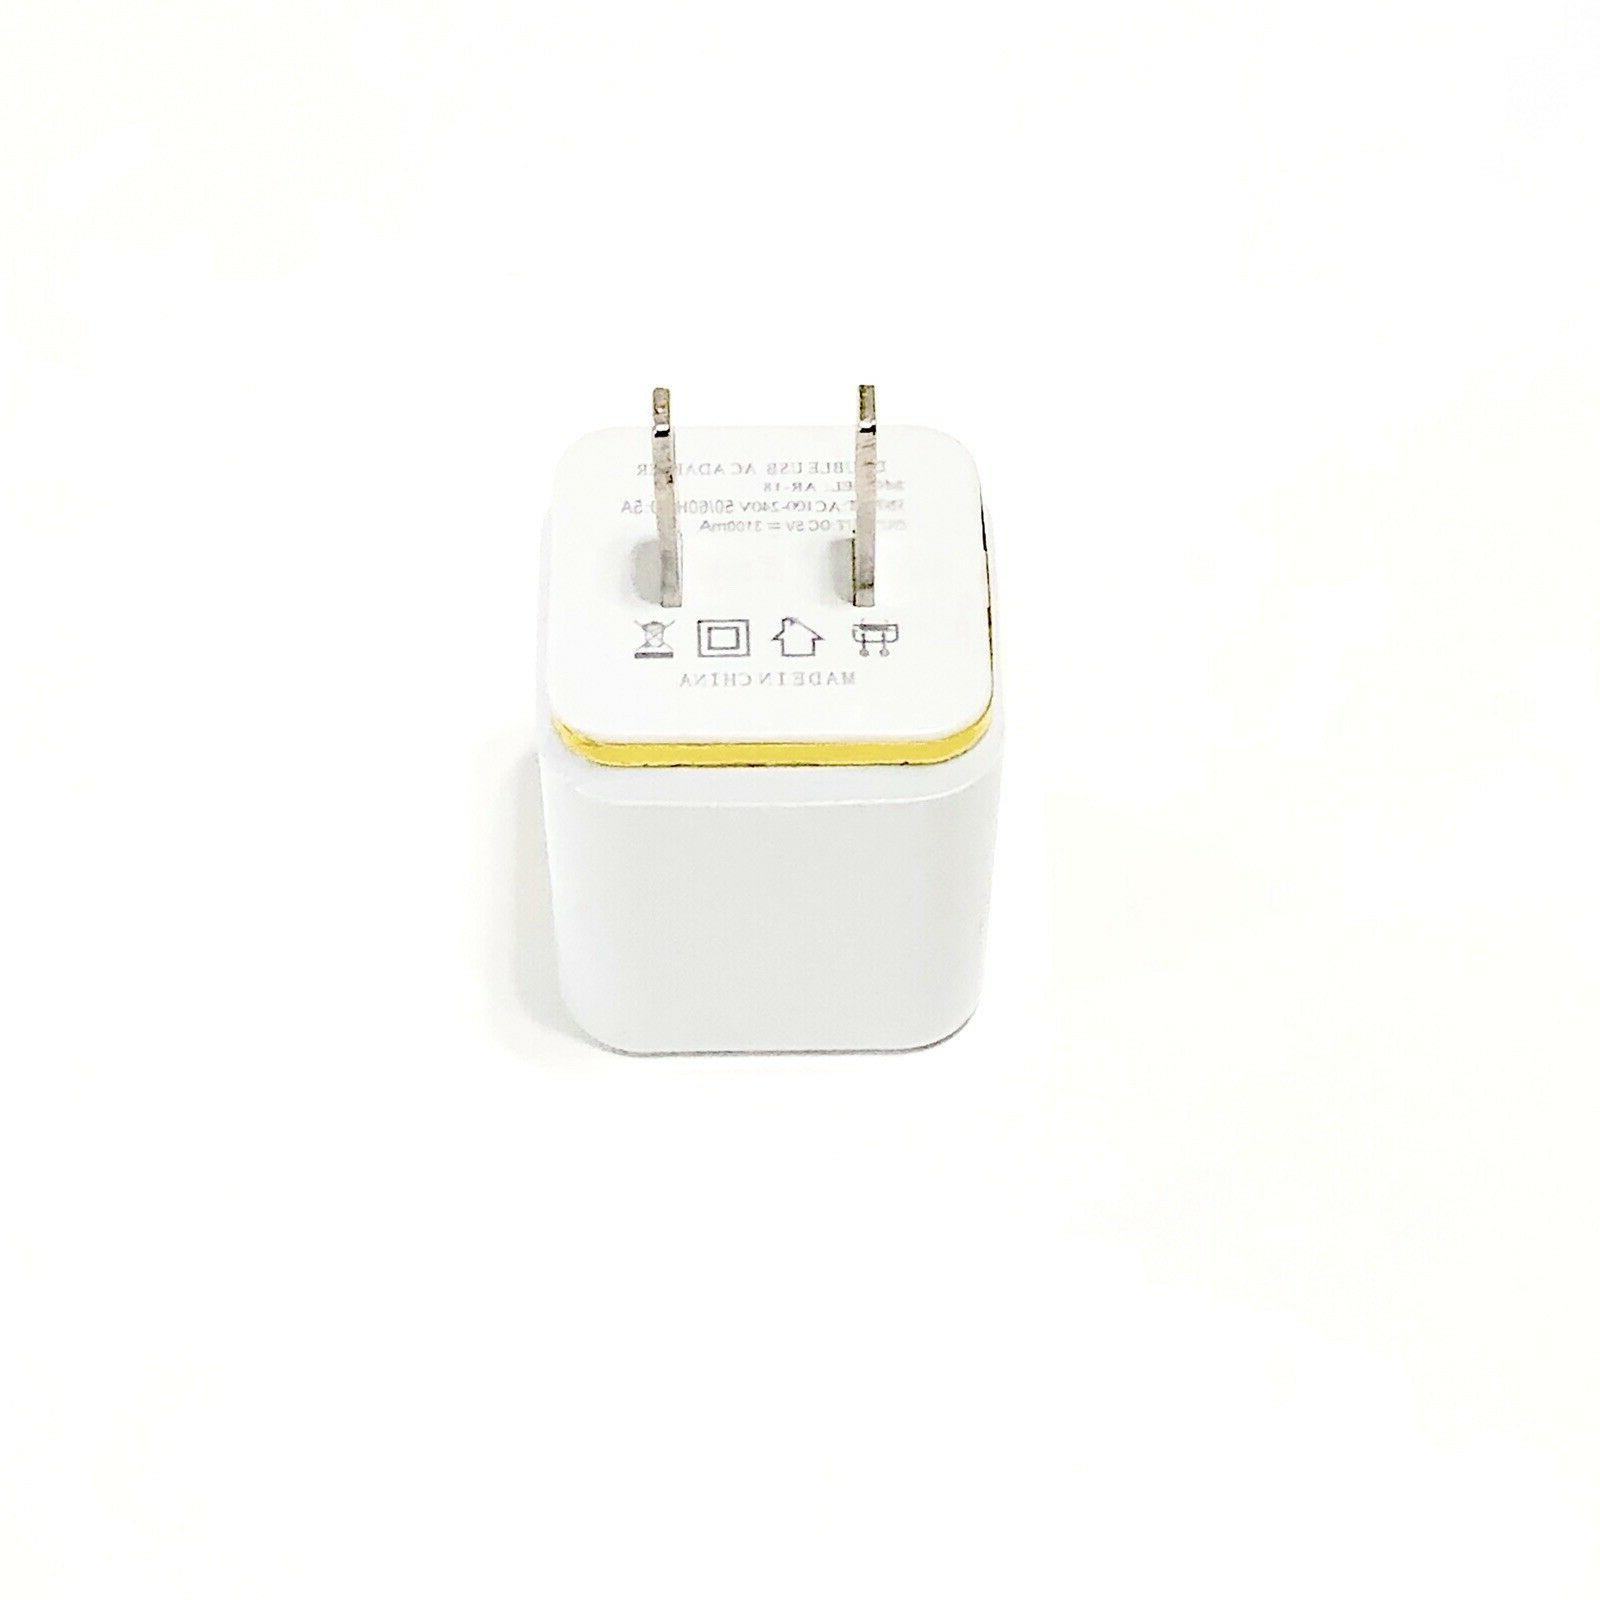 USB Double Wall Charger Adapter 1A 5V iPhone/ /Galaxy / LG.